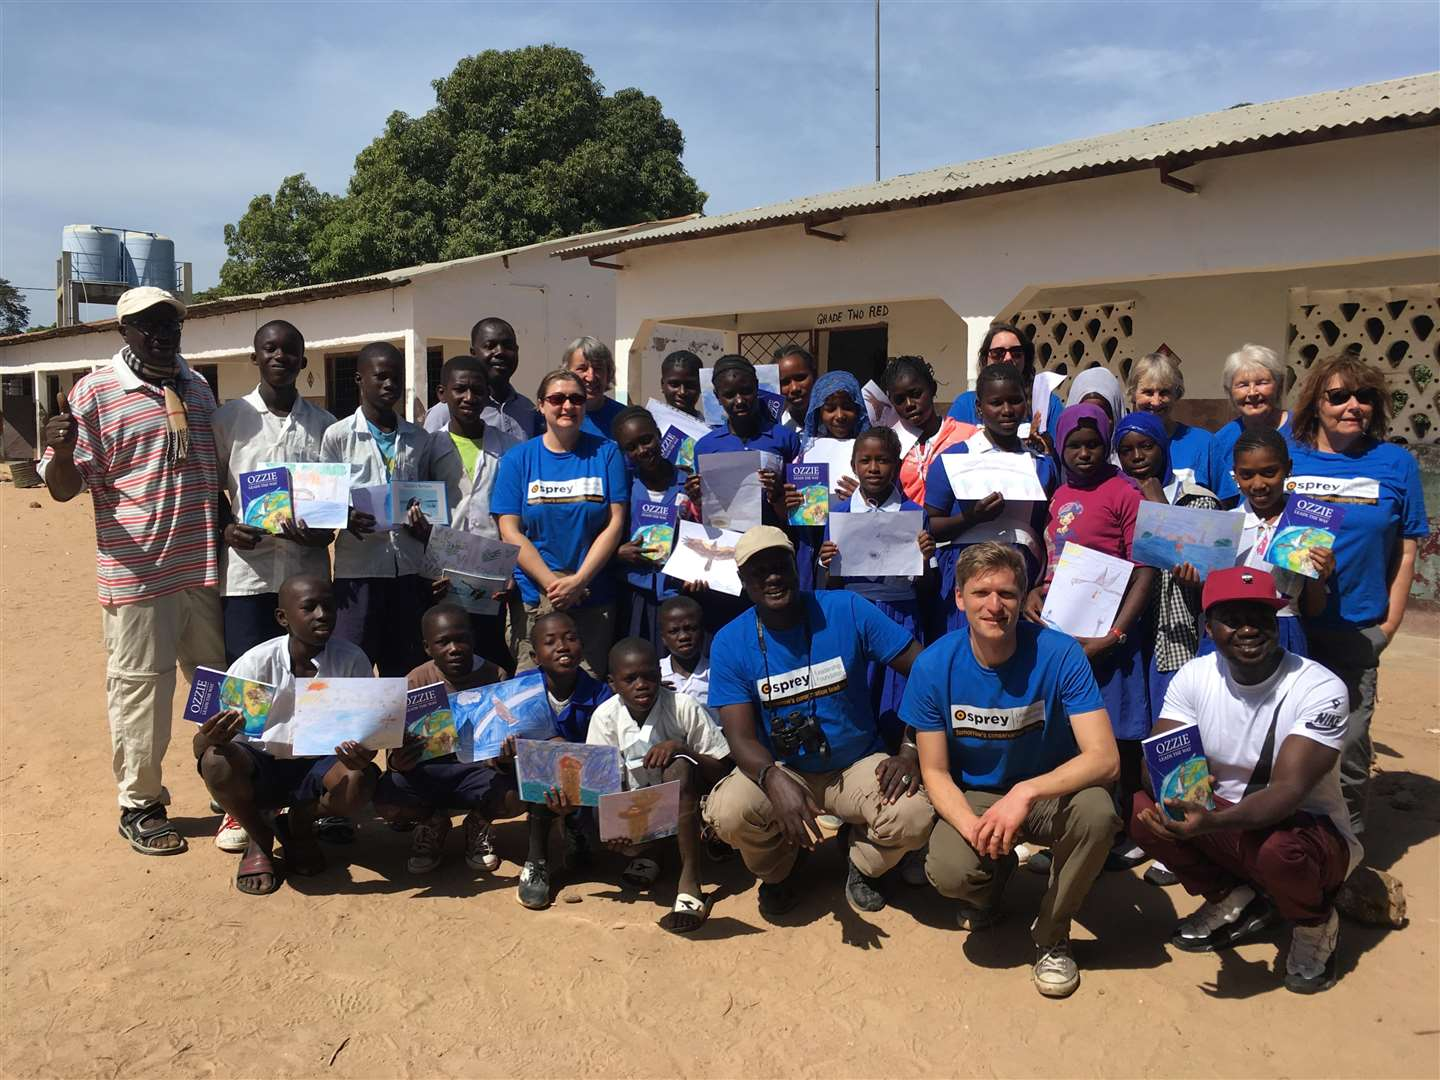 The Rutland Osprey Leadership Foundation group at Tanji School in The Gambia Photo: Osprey Leadership Foundation